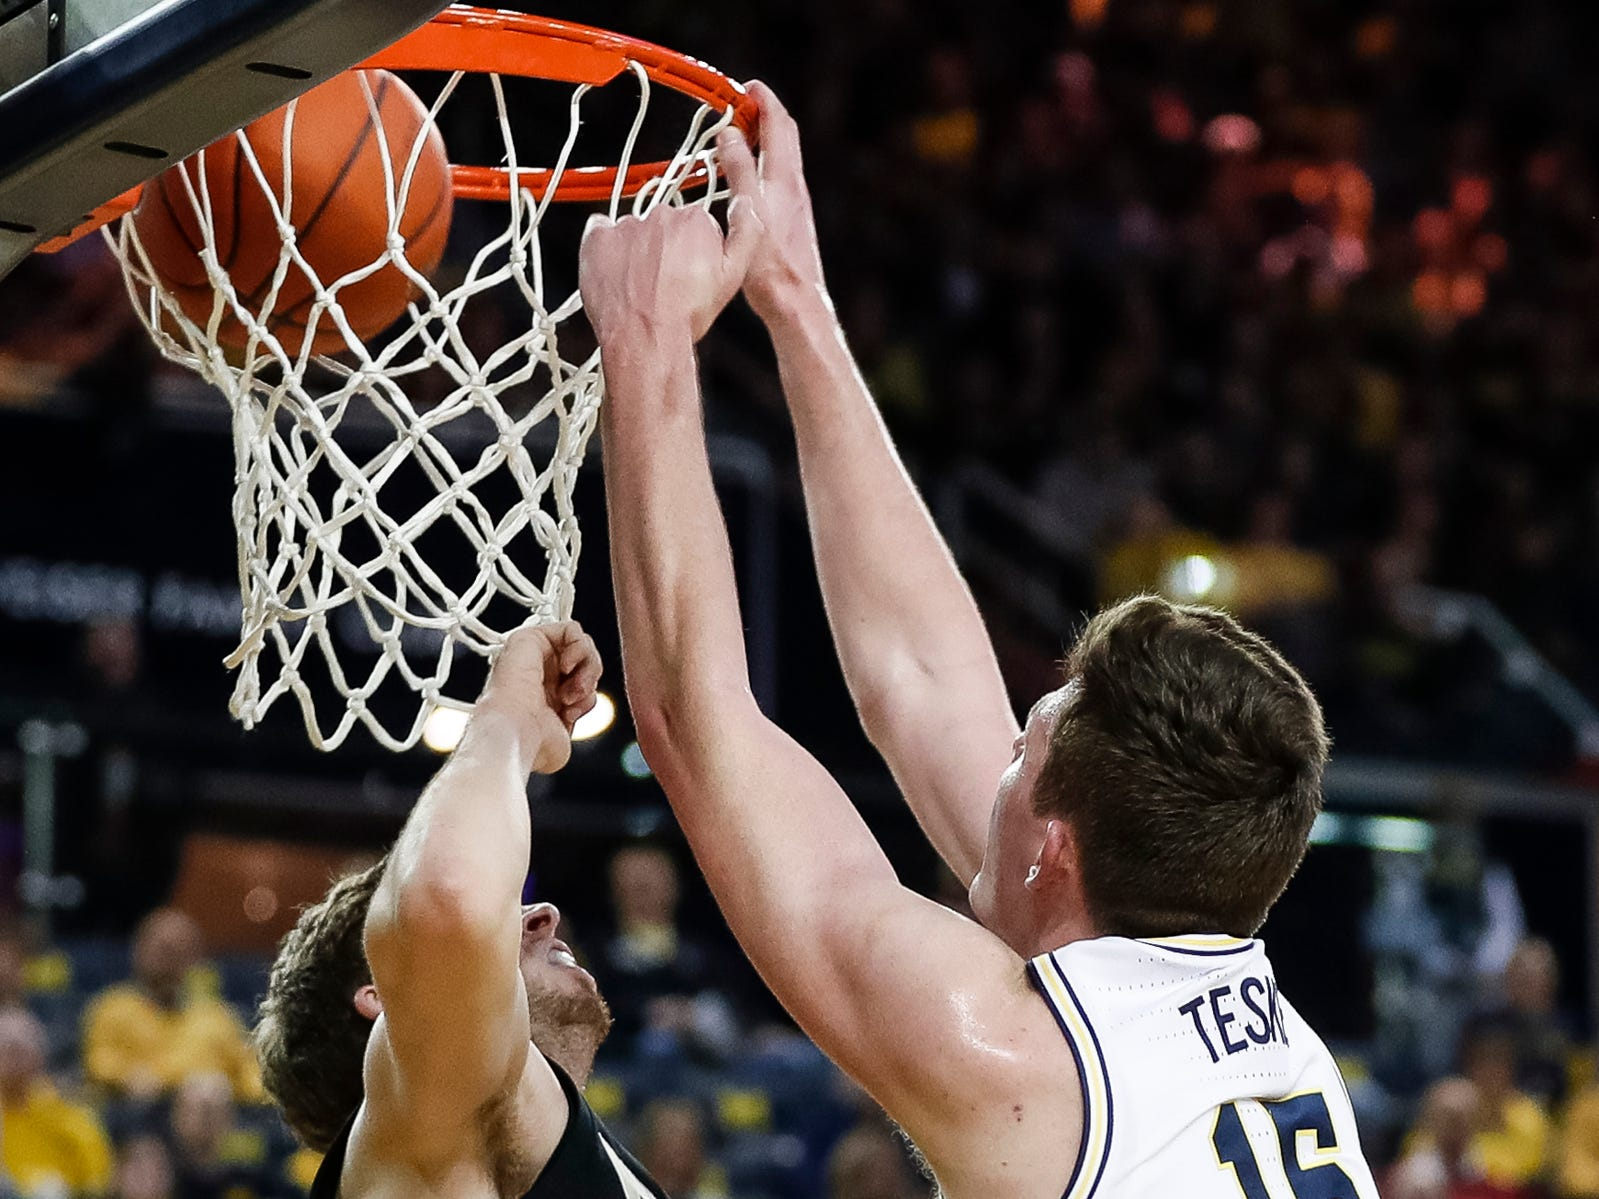 Michigan center Jon Teske (15)  dunks against Purdue guard Ryan Cline (14) during the first half at Crisler Center on Saturday, Dec. 1, 2018.